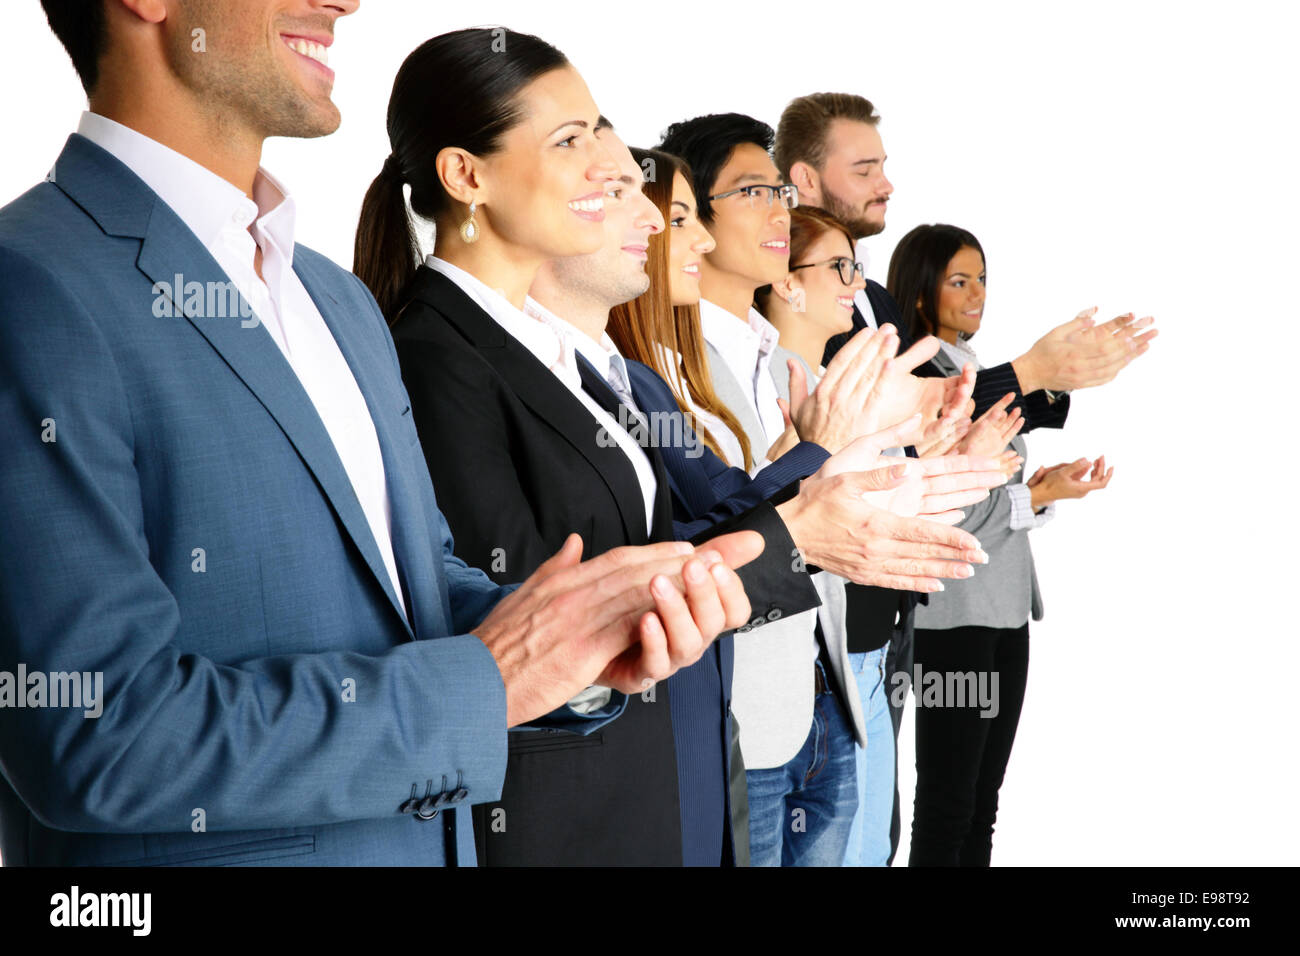 Group of businesspeople applauding - Stock Image